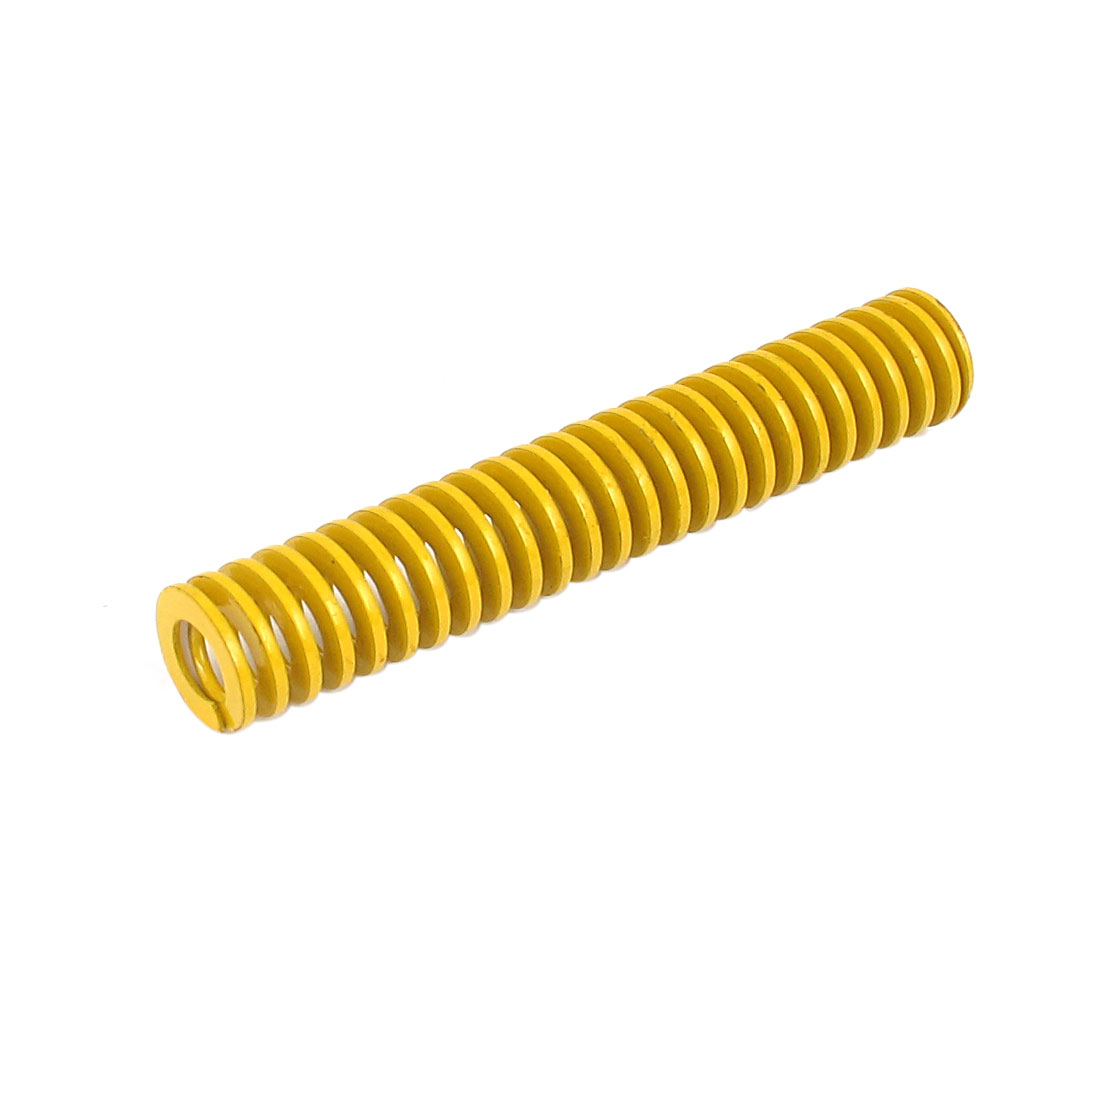 12mm OD 70mm Long Lightest Load Spiral Stamping Compression Die Spring Yellow